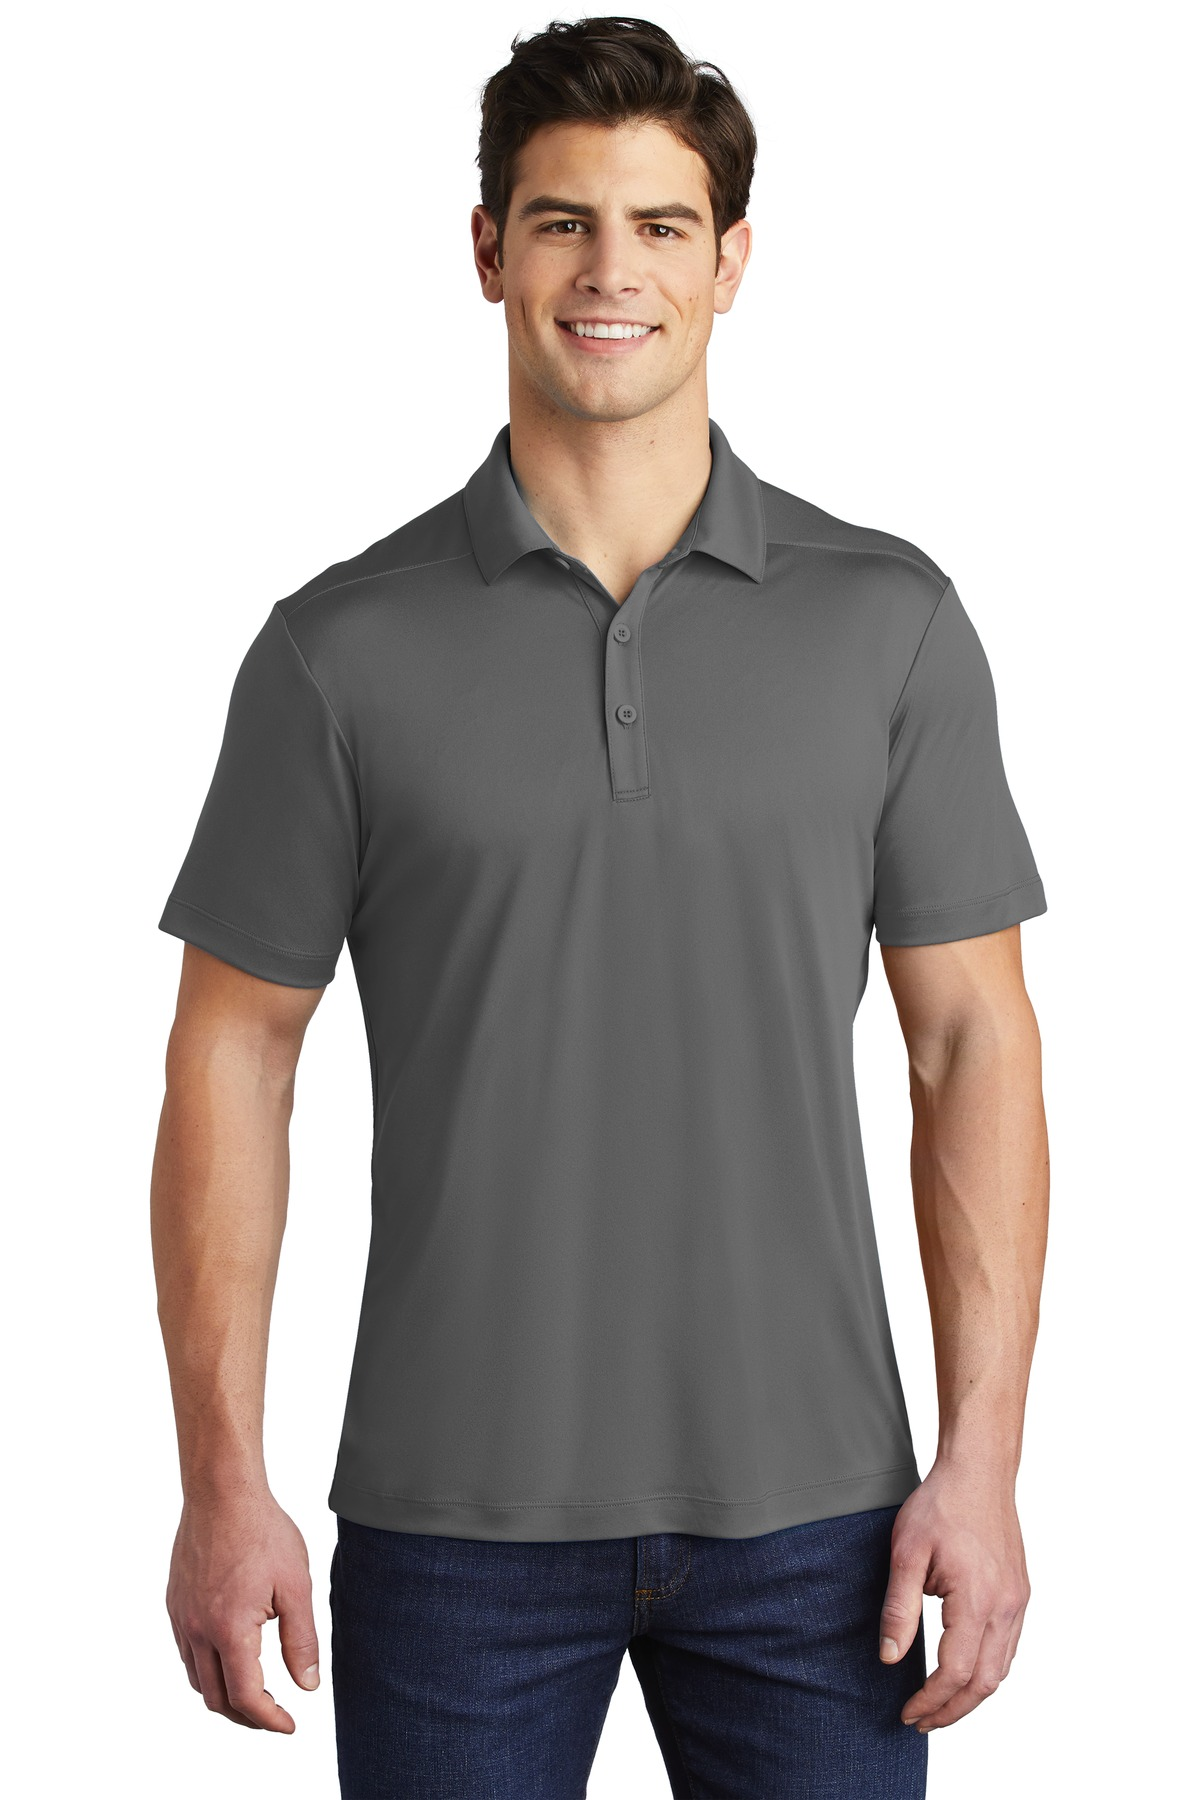 Sport-Tek  ®   Posi-UV ™   Pro Polo. ST520 - Dark Smoke Grey